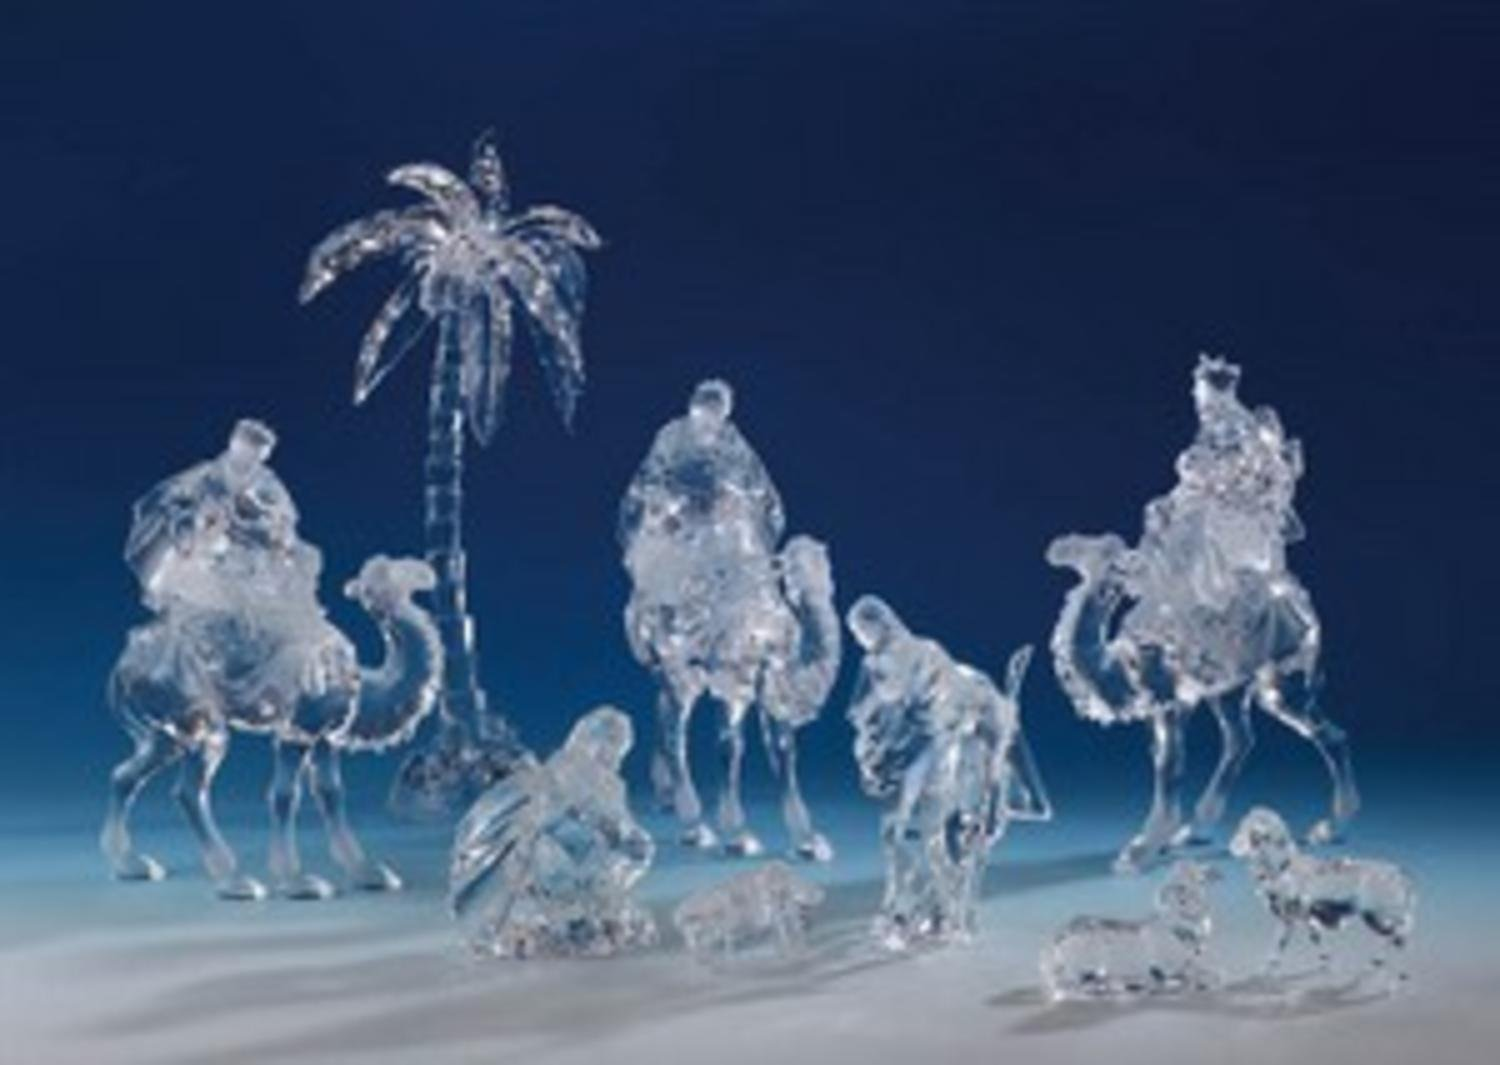 9 Piece Icy Crystal Religious Christmas Nativity Set